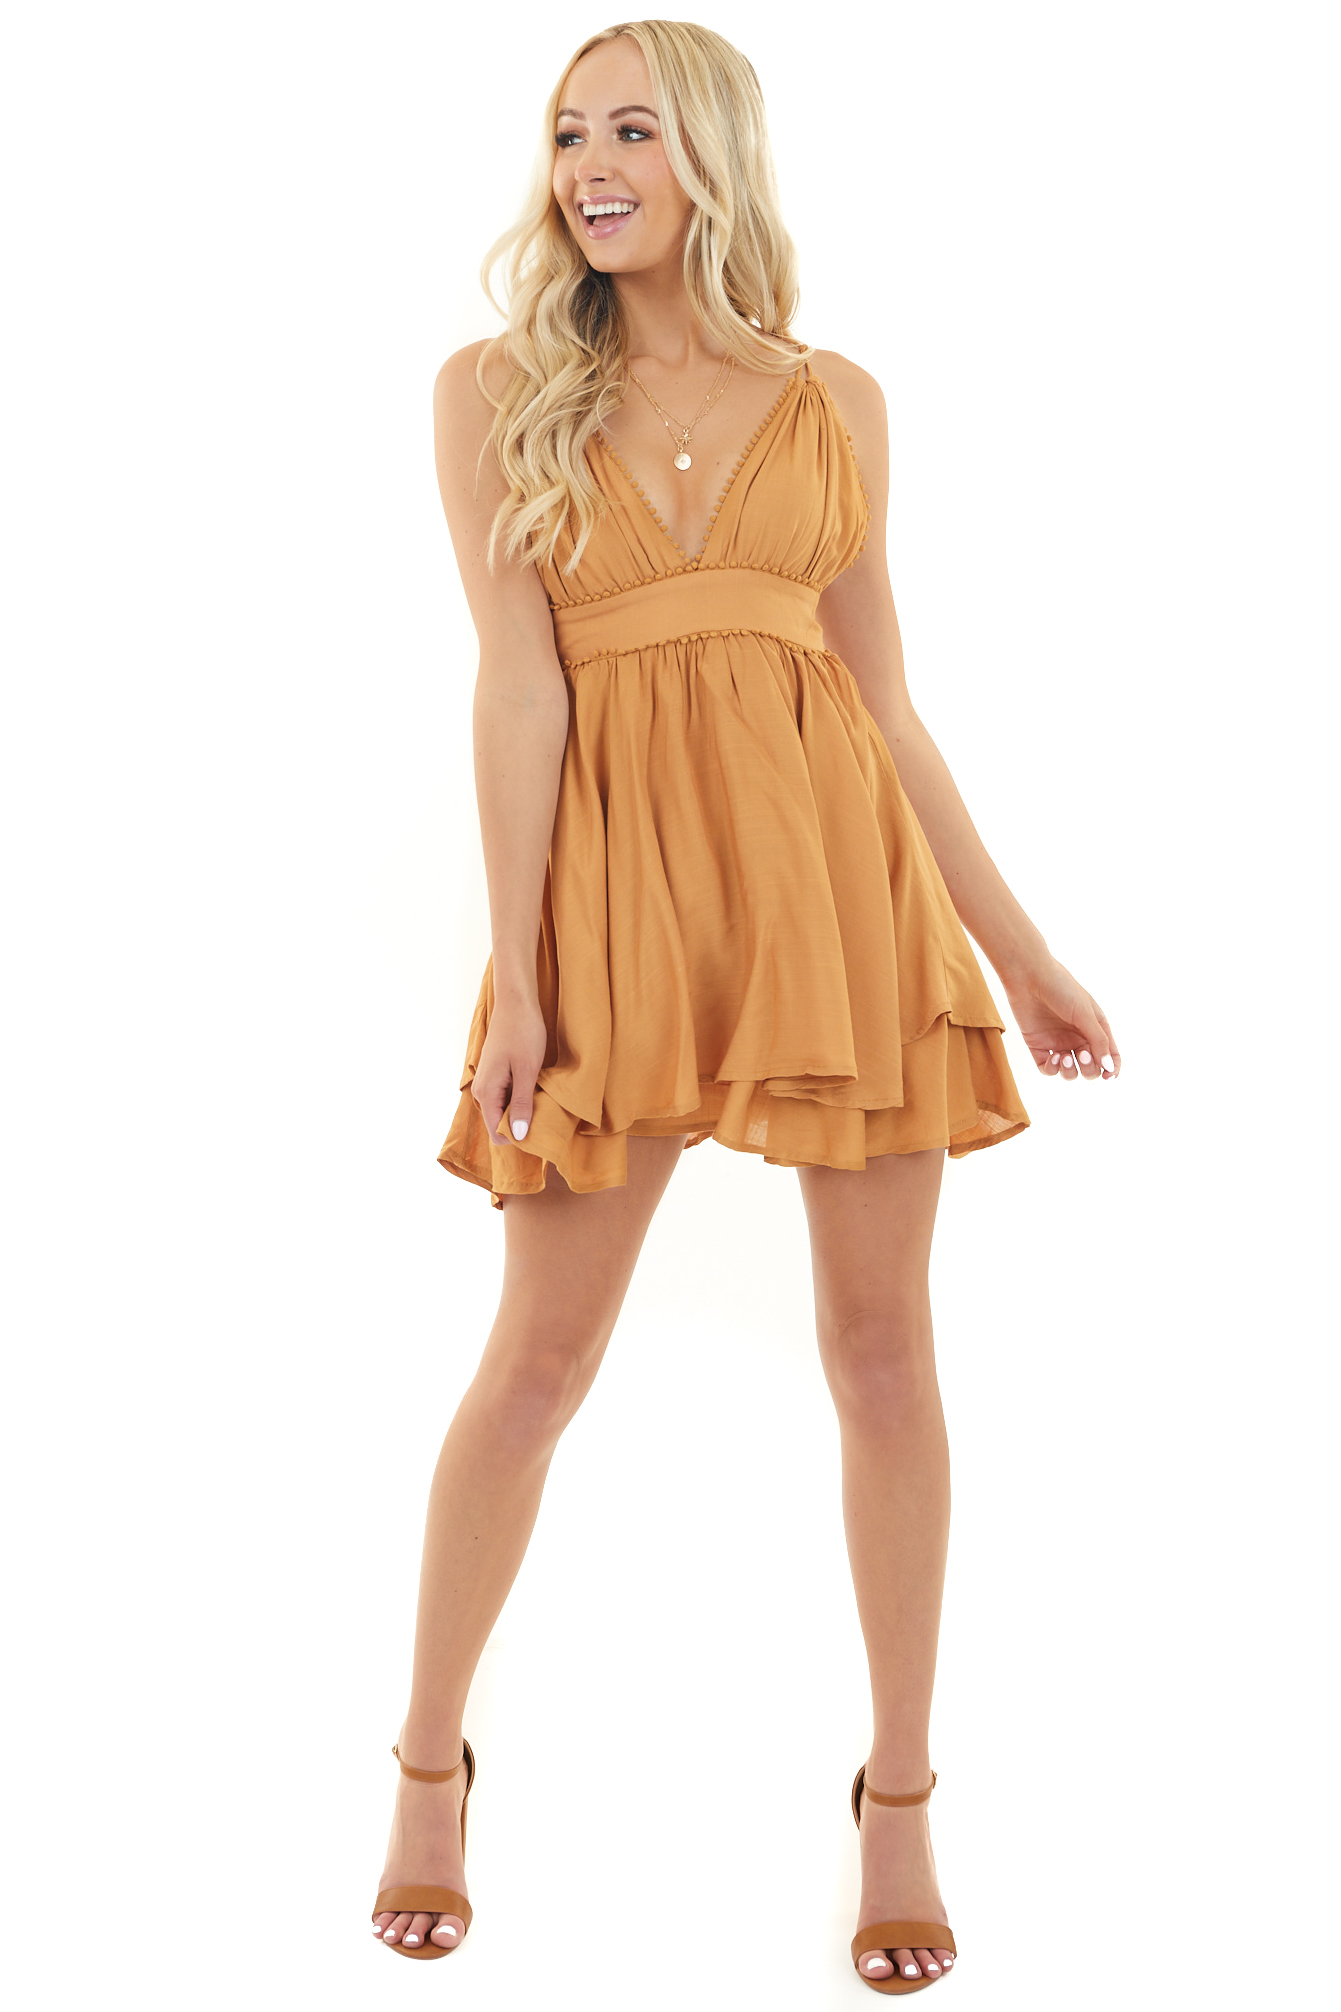 Caramel Double Strap Halter Neck Mini Dress with Bubble Lace